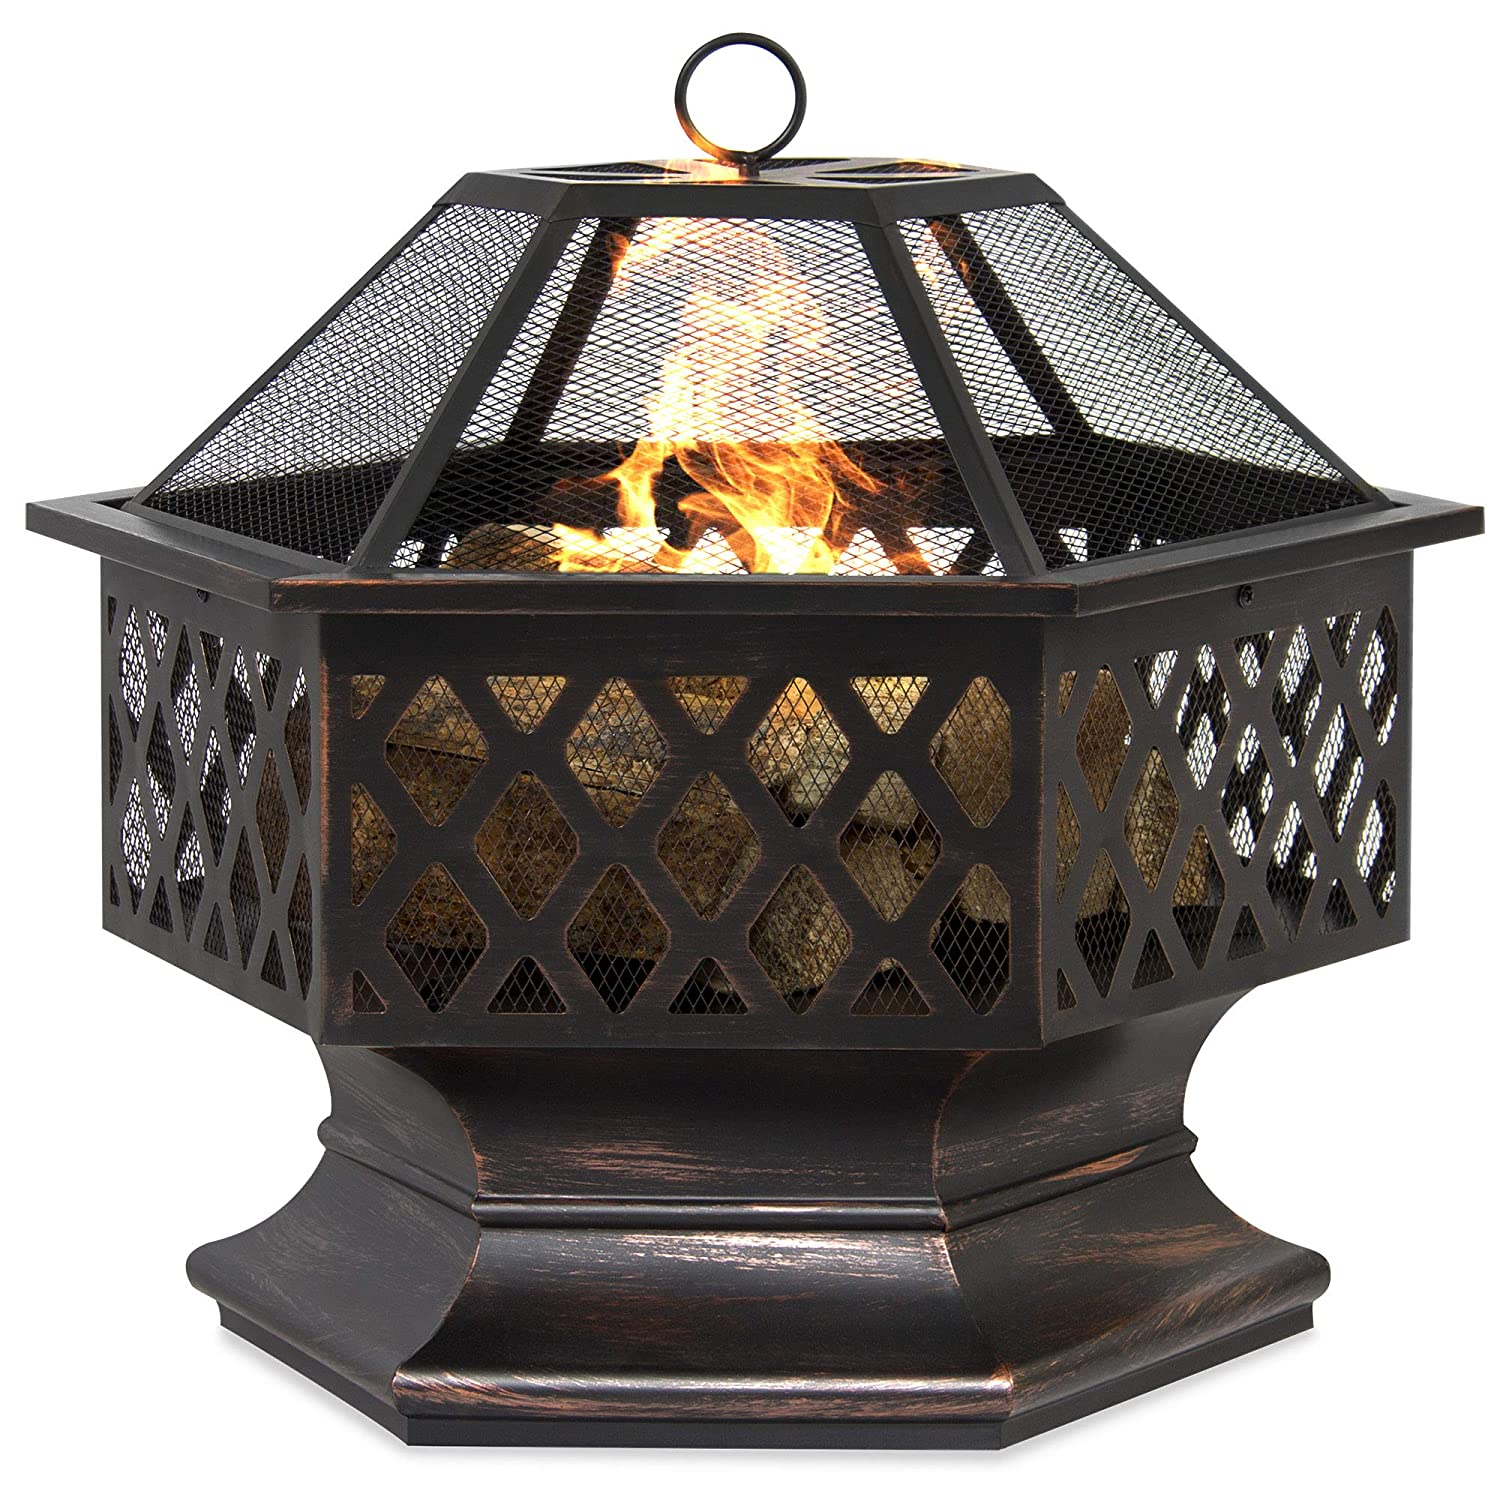 Best Choice Products Outdoor Hex-Shaped 24-inch Steel Fire Pit Decoration Accent w/Flame-Retardant Lid, Black